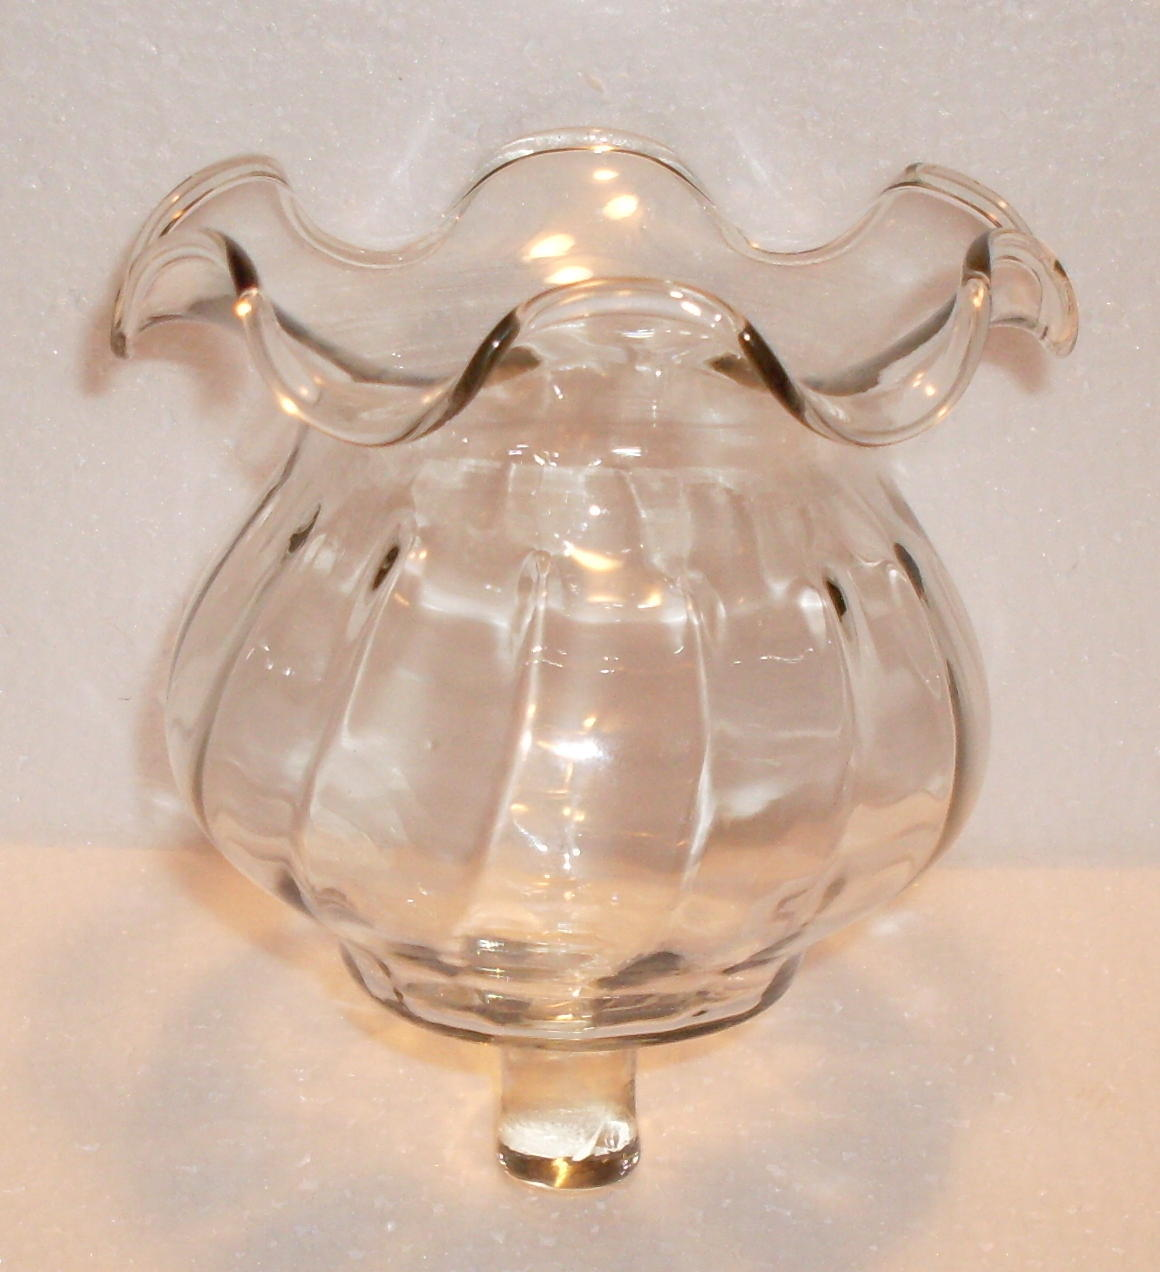 Home Interiors Victorian Style Peg Votive Cup Clear Glass Ruffled Candle Holders Accessories